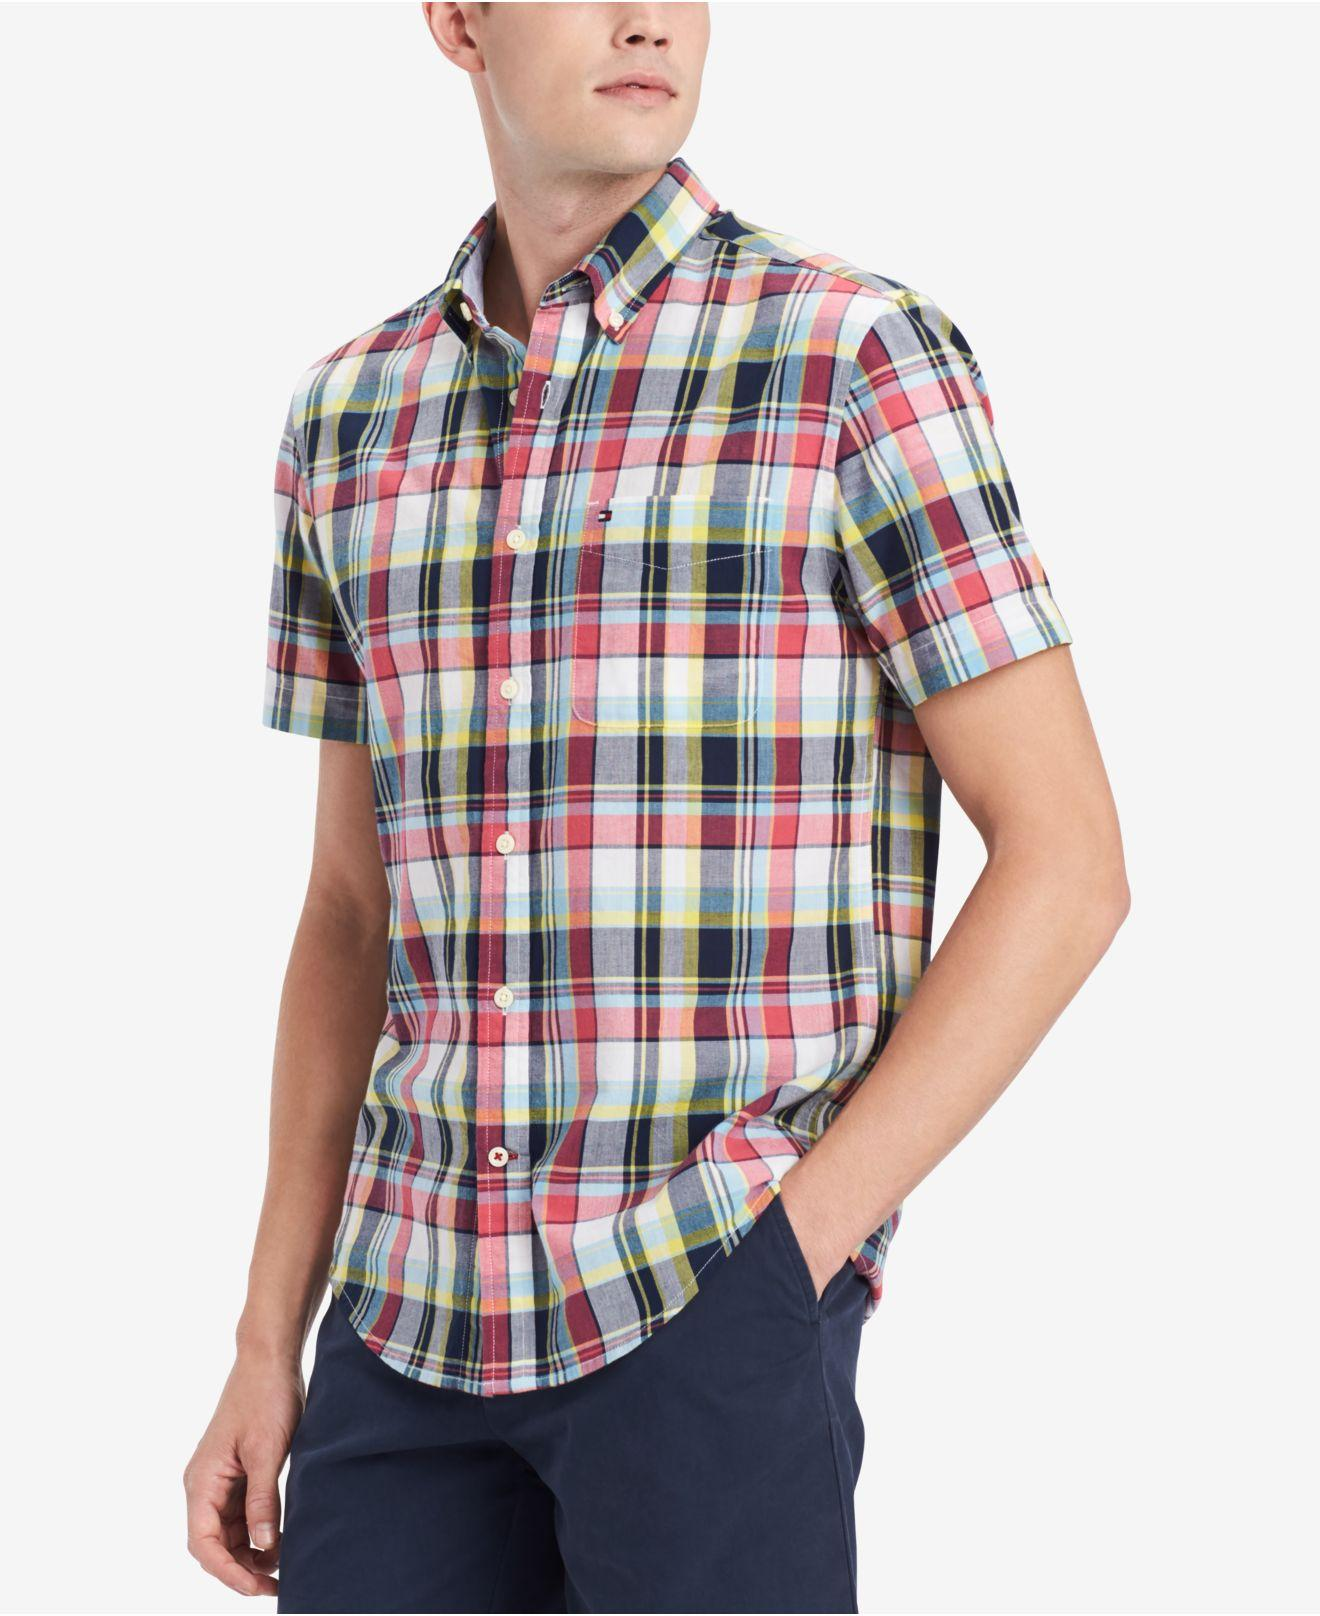 d1a51cbb Lyst - Tommy Hilfiger Alex Plaid Shirt, Created For Macy's for Men